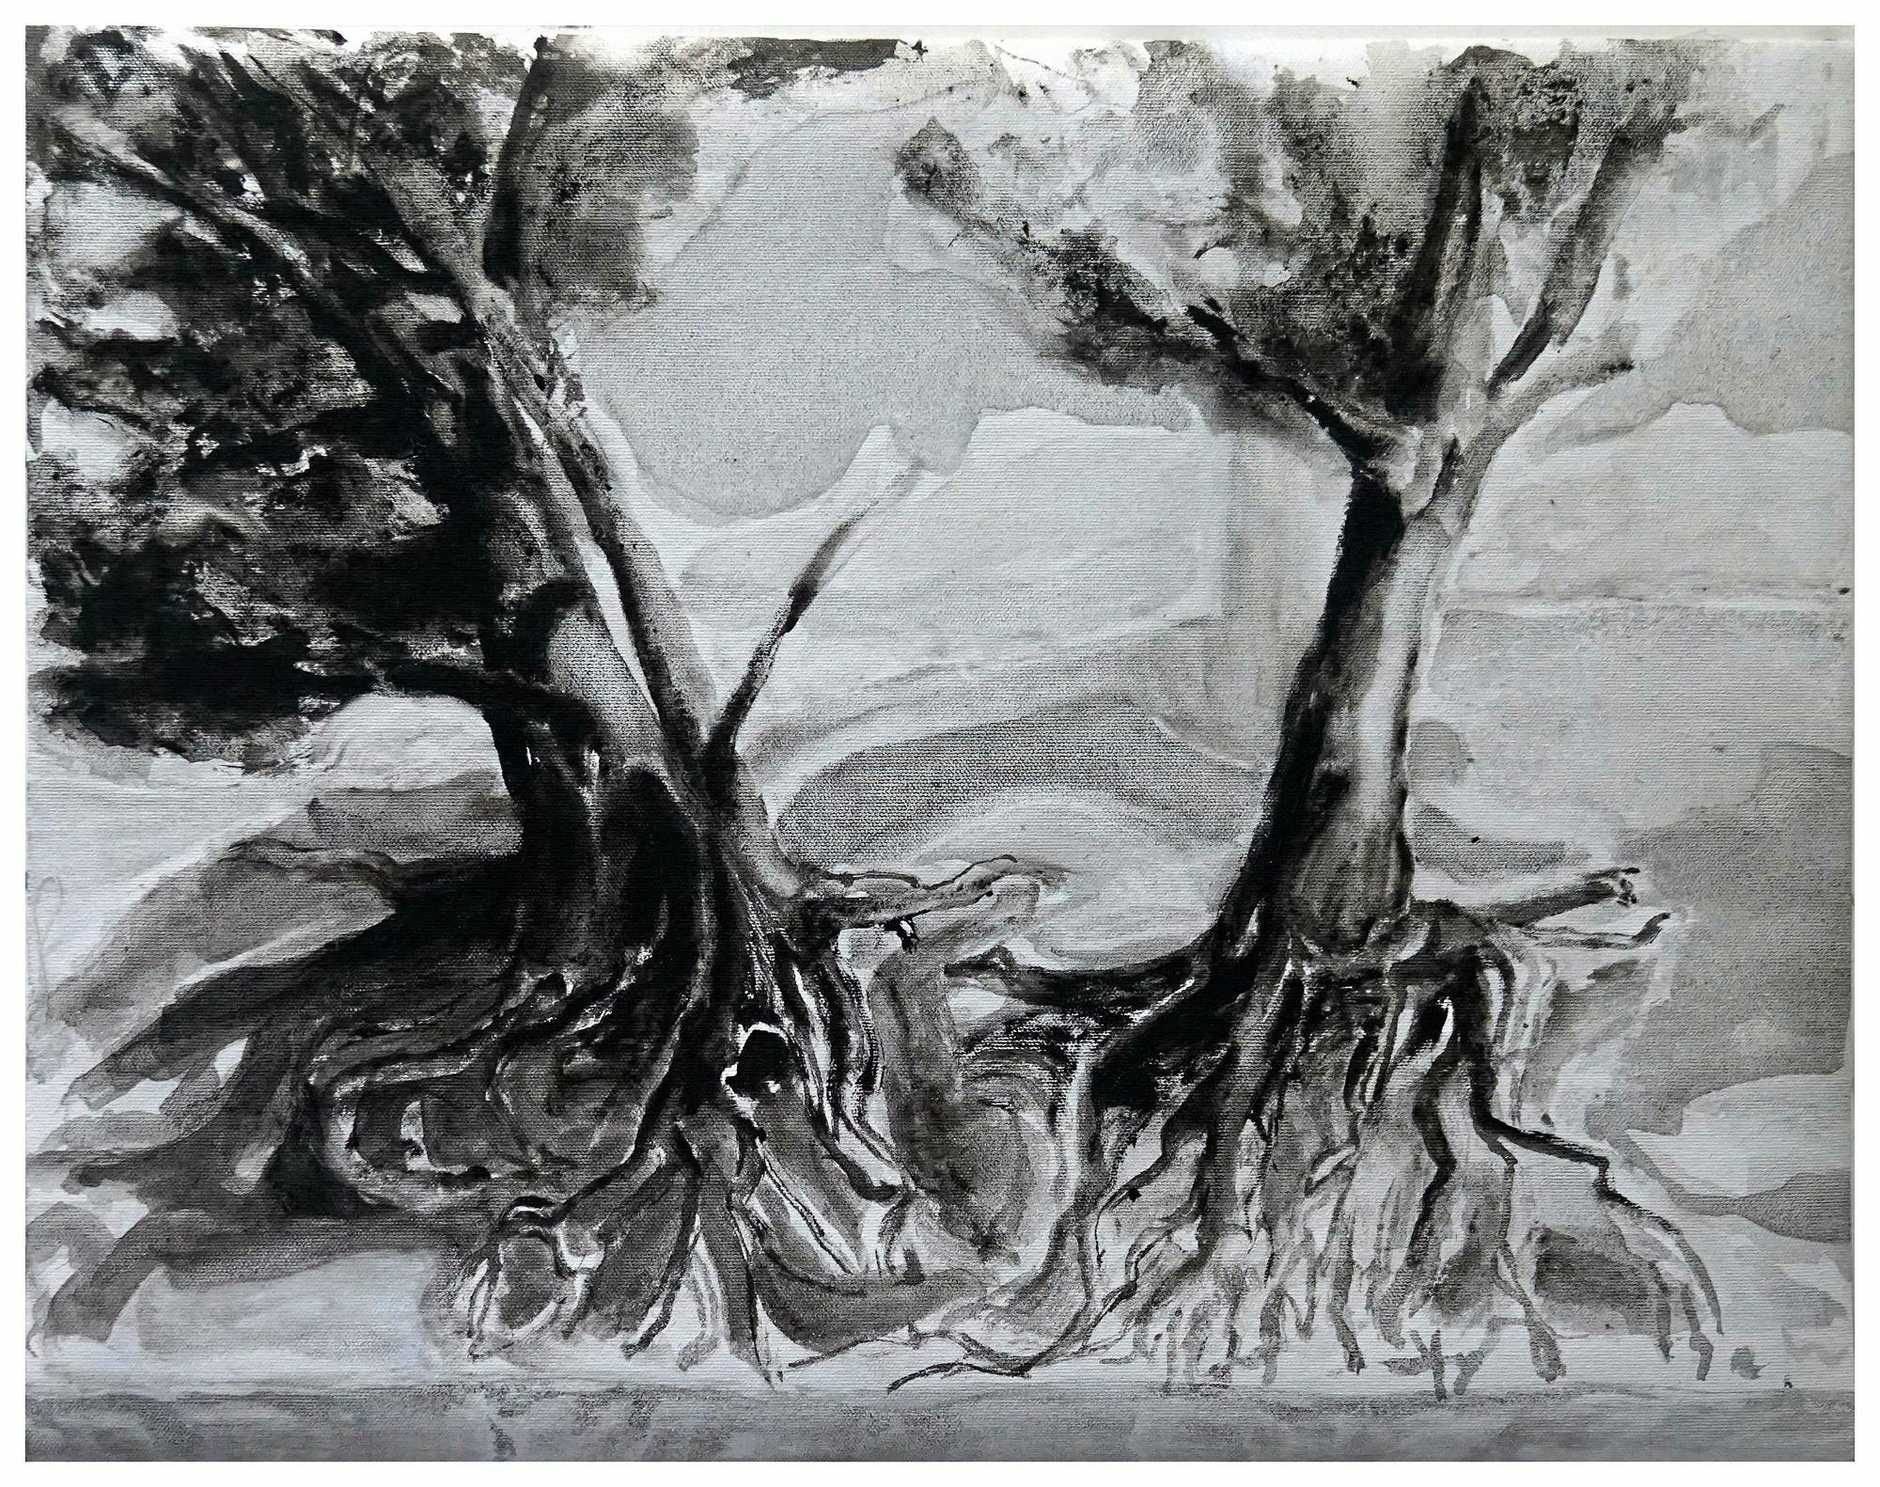 Artist Wilhelmus Breikers who has an exhibition at Gatakers Art Space until February 2. This is his artwork On The Banks of The Thomson River